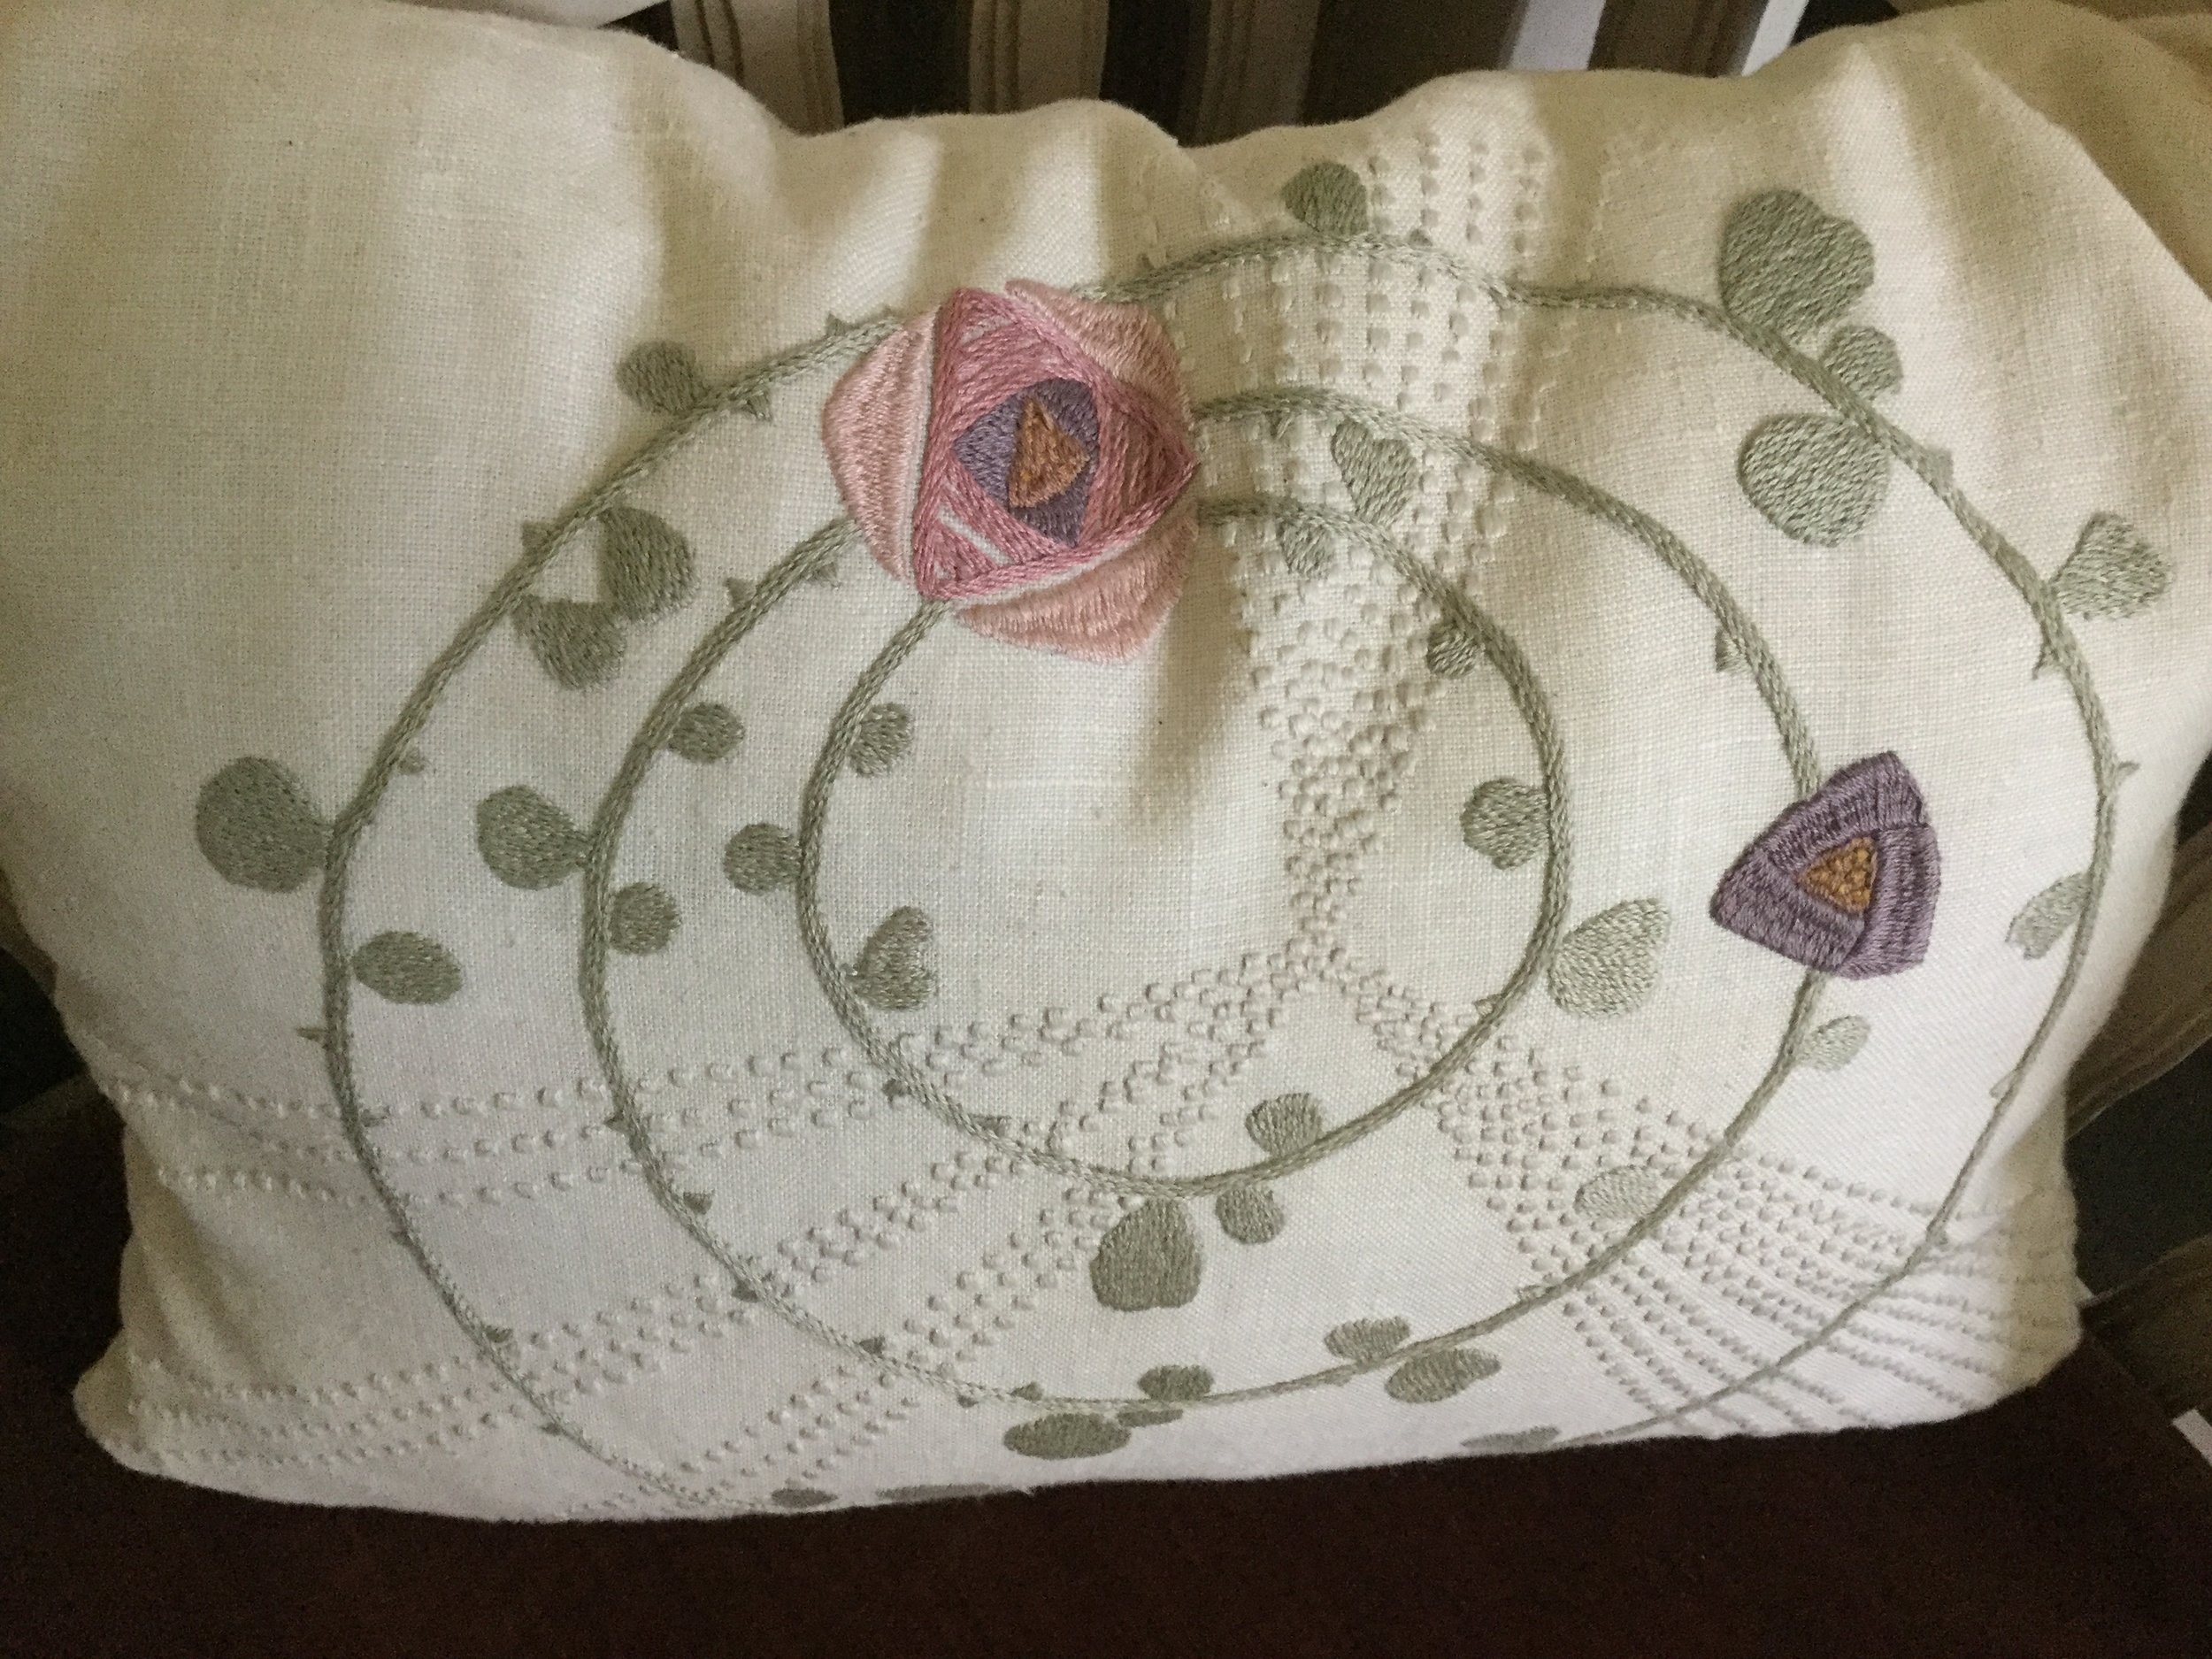 A pillow from the 'Rose' design by Saarinen in the upstairs garden room.